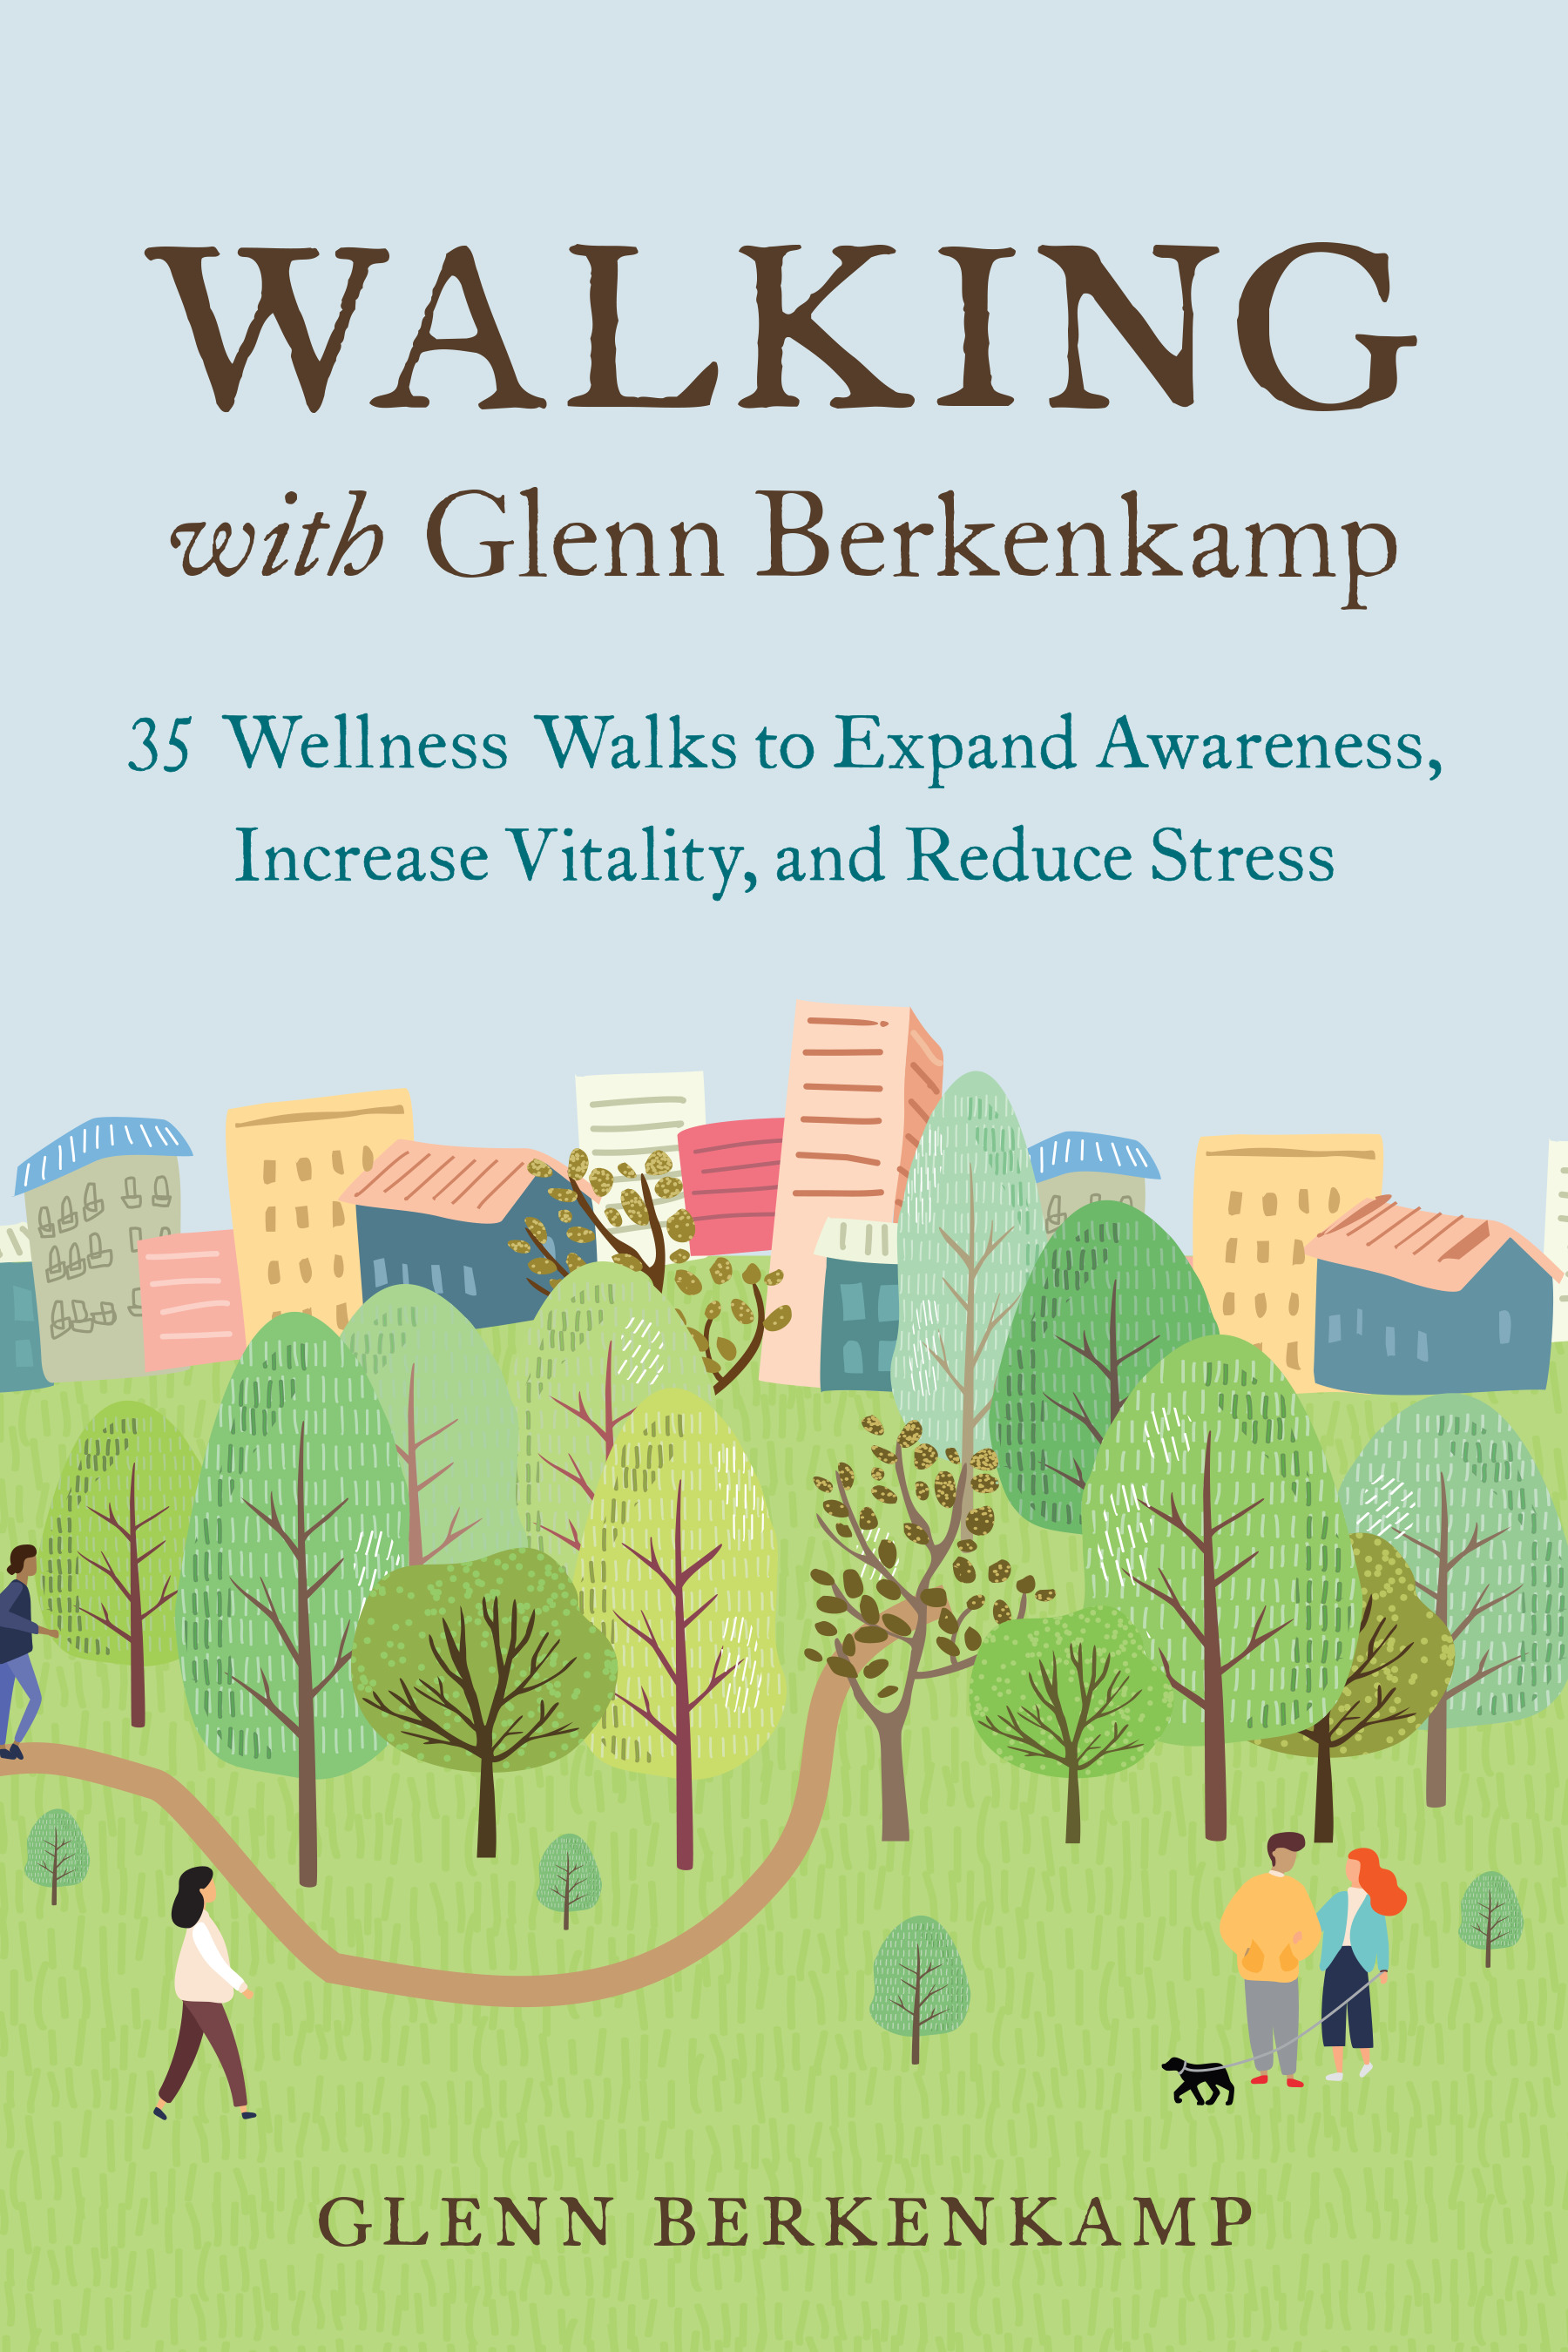 Walking with Glenn Berkenkamp